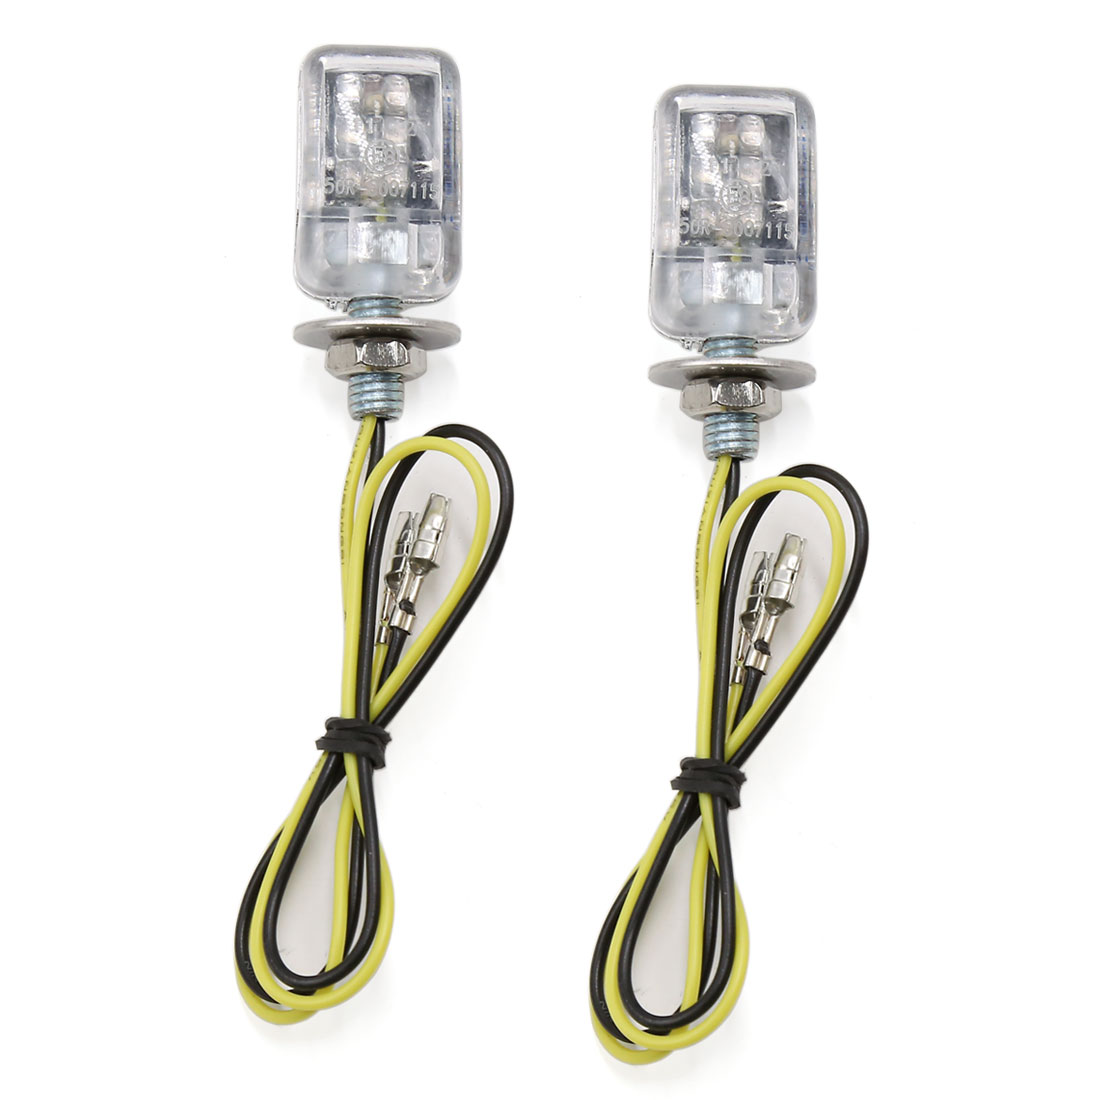 Unique Bargains2 Pcs 6mm Thread Dia   Turn Signal Indicator Light Yellow for Motorcycle